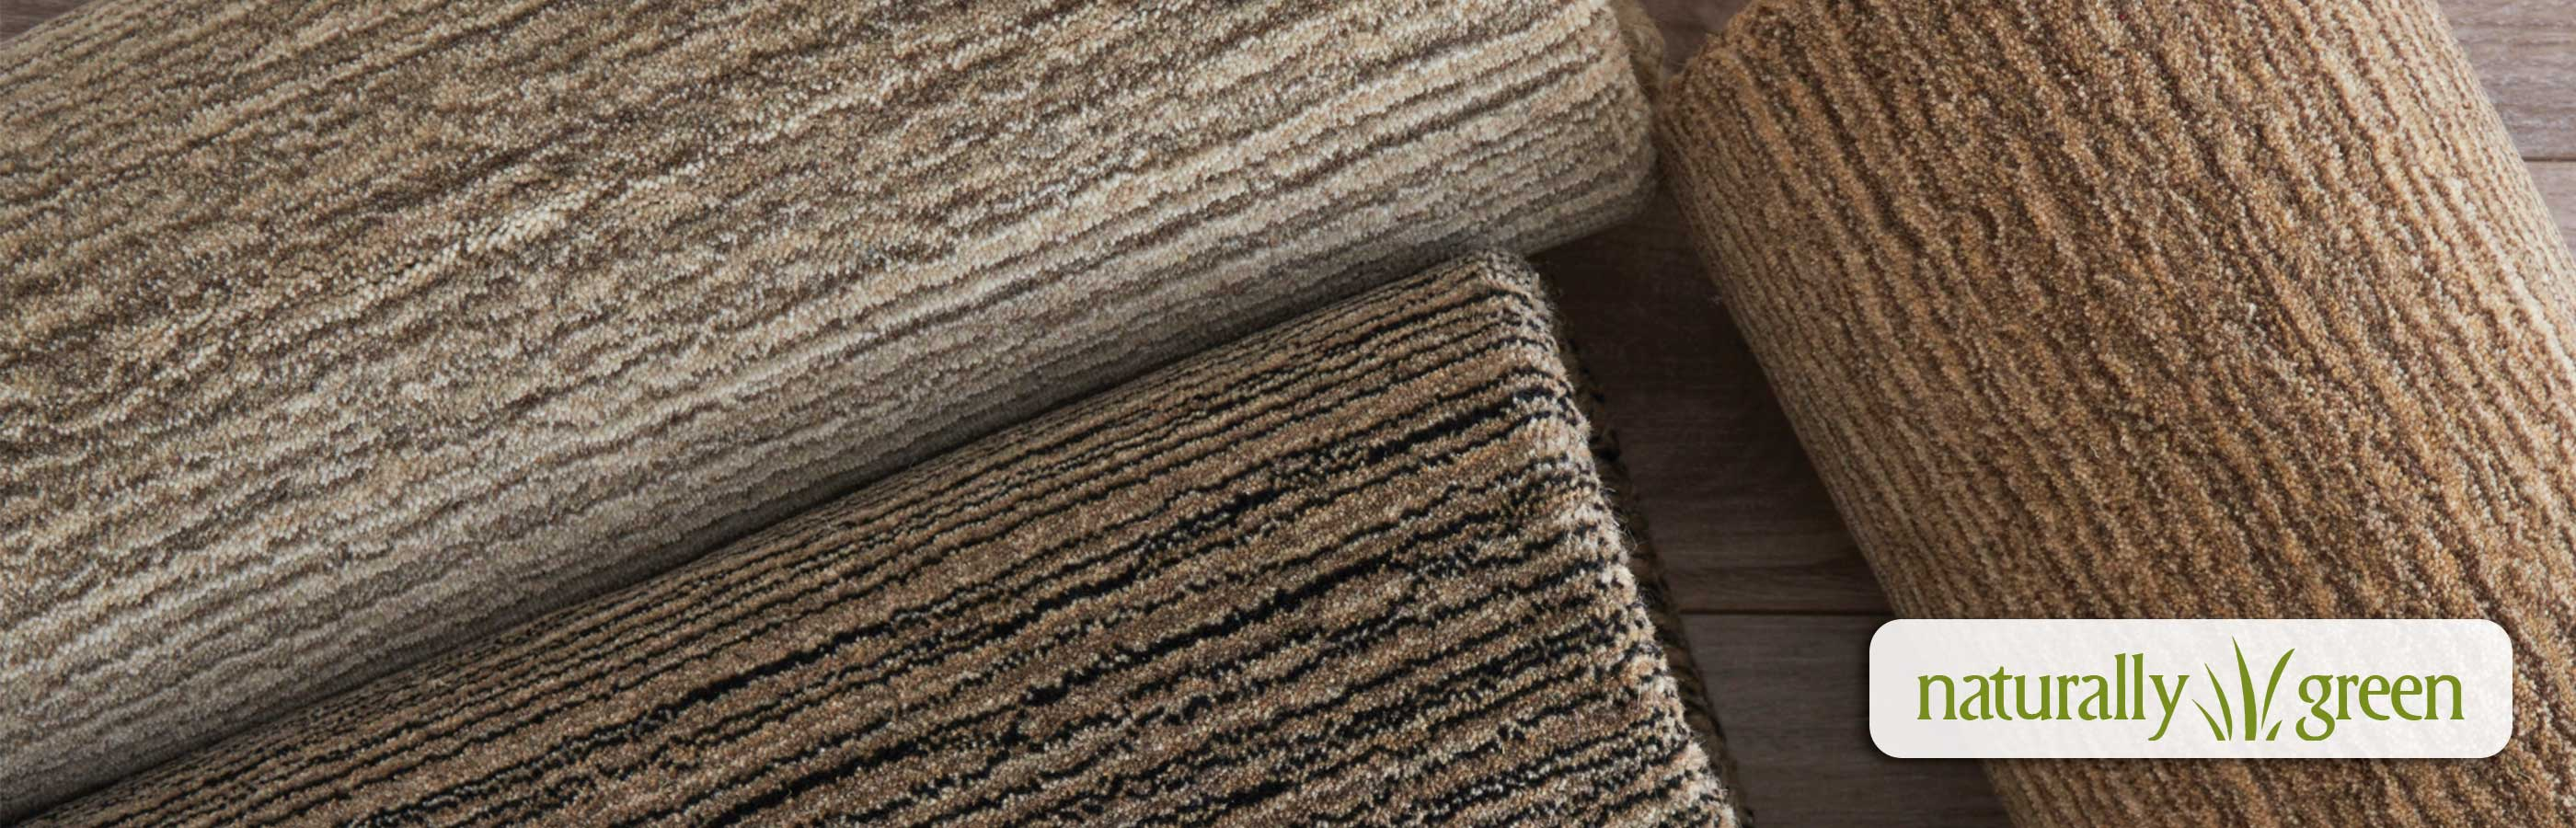 Environmentally Friendly Fine Quality All Natural Wool Offers Numerous Advantages Whenused In Flooring It Has Been The Standard Floorcovering For